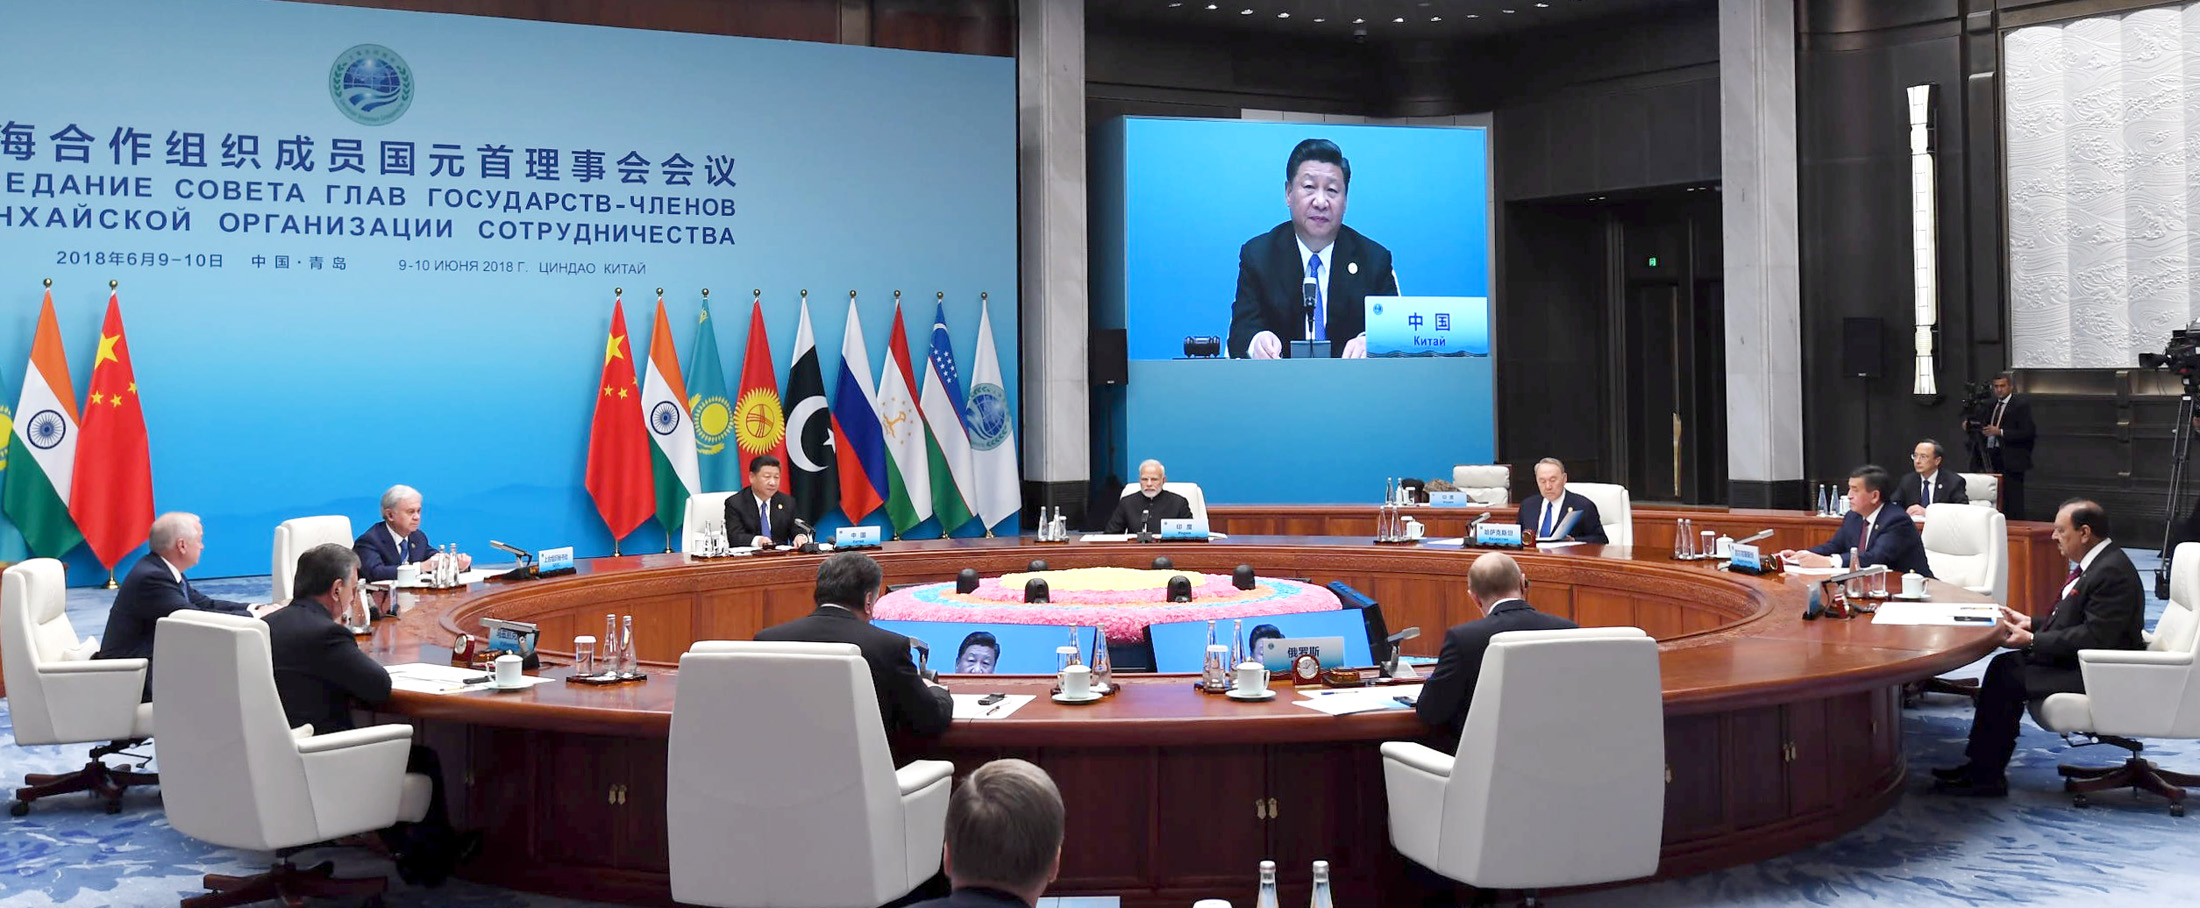 The Prime Minister, Shri Narendra Modi attending the Restricted Session of SCO Summit, in Qingdao, China on June 10, 2018.